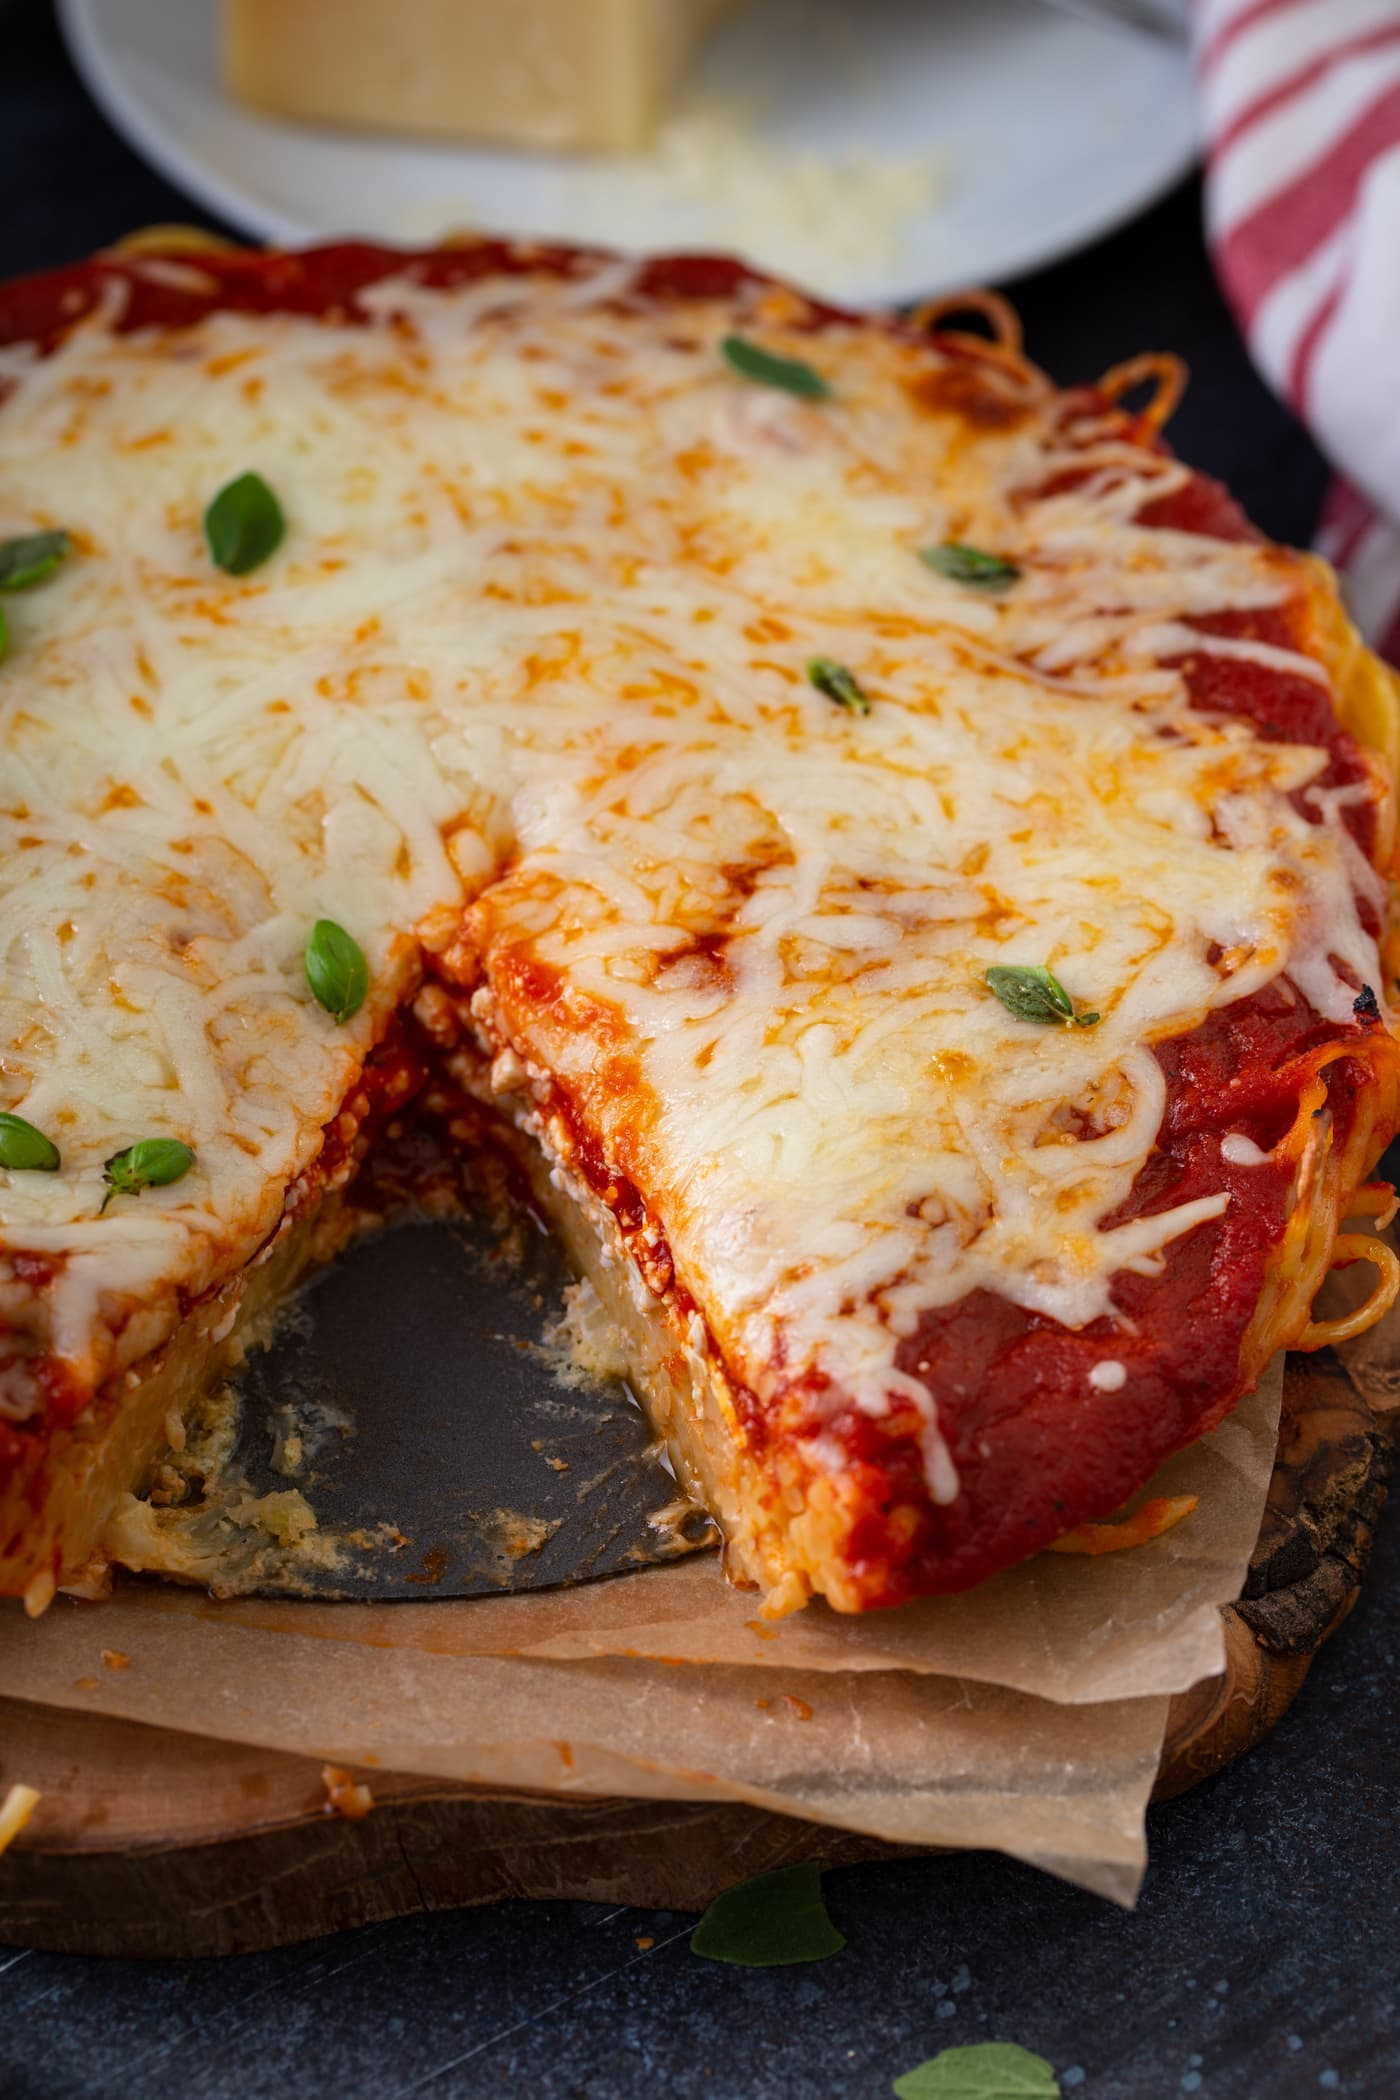 A baked spaghetti pie that has a slice removed. There are layers of spaghetti, spaghetti sauce, and melted shredded cheese. A little fresh basil is sprinkled on top.